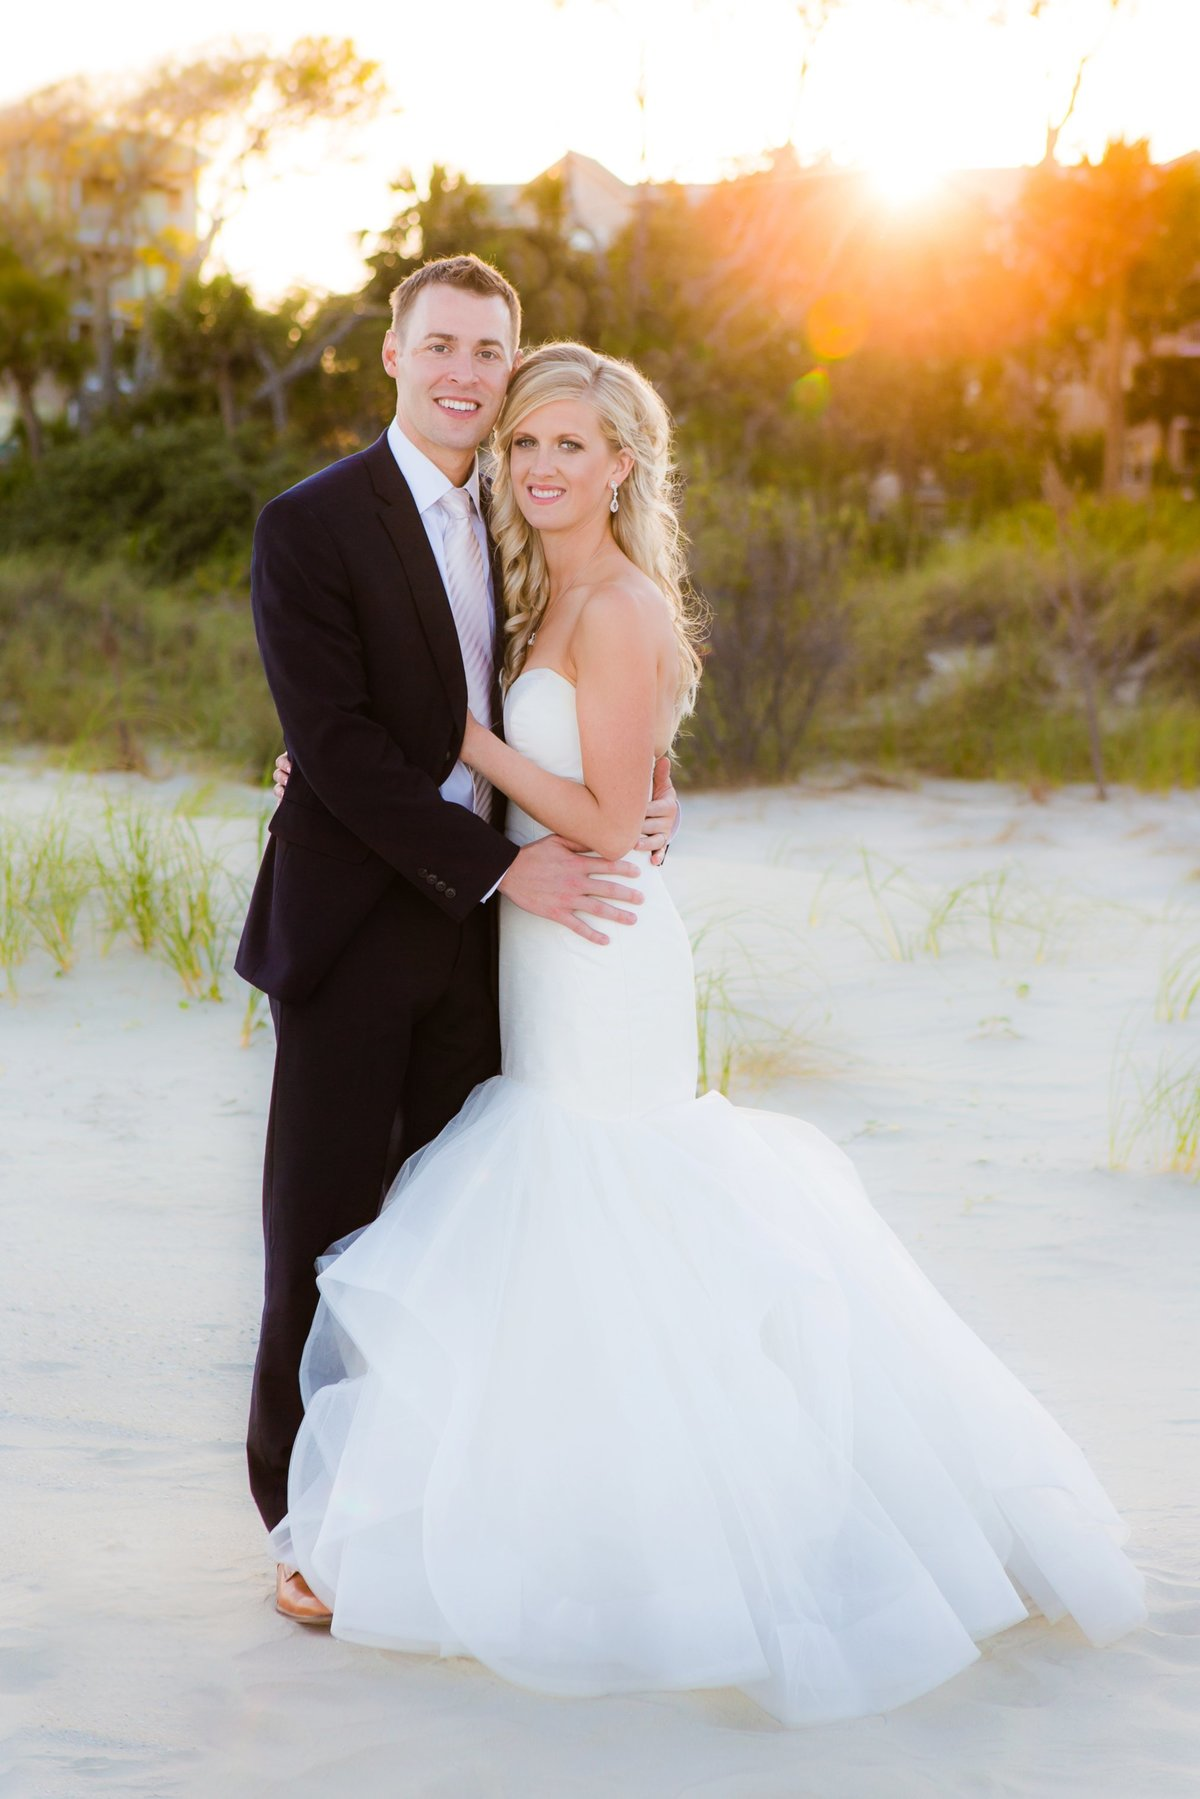 Hilton Head Island Weddings by Sylvia Schutz Photography at the Omni Hotel www.sylviaschutzphotography.com